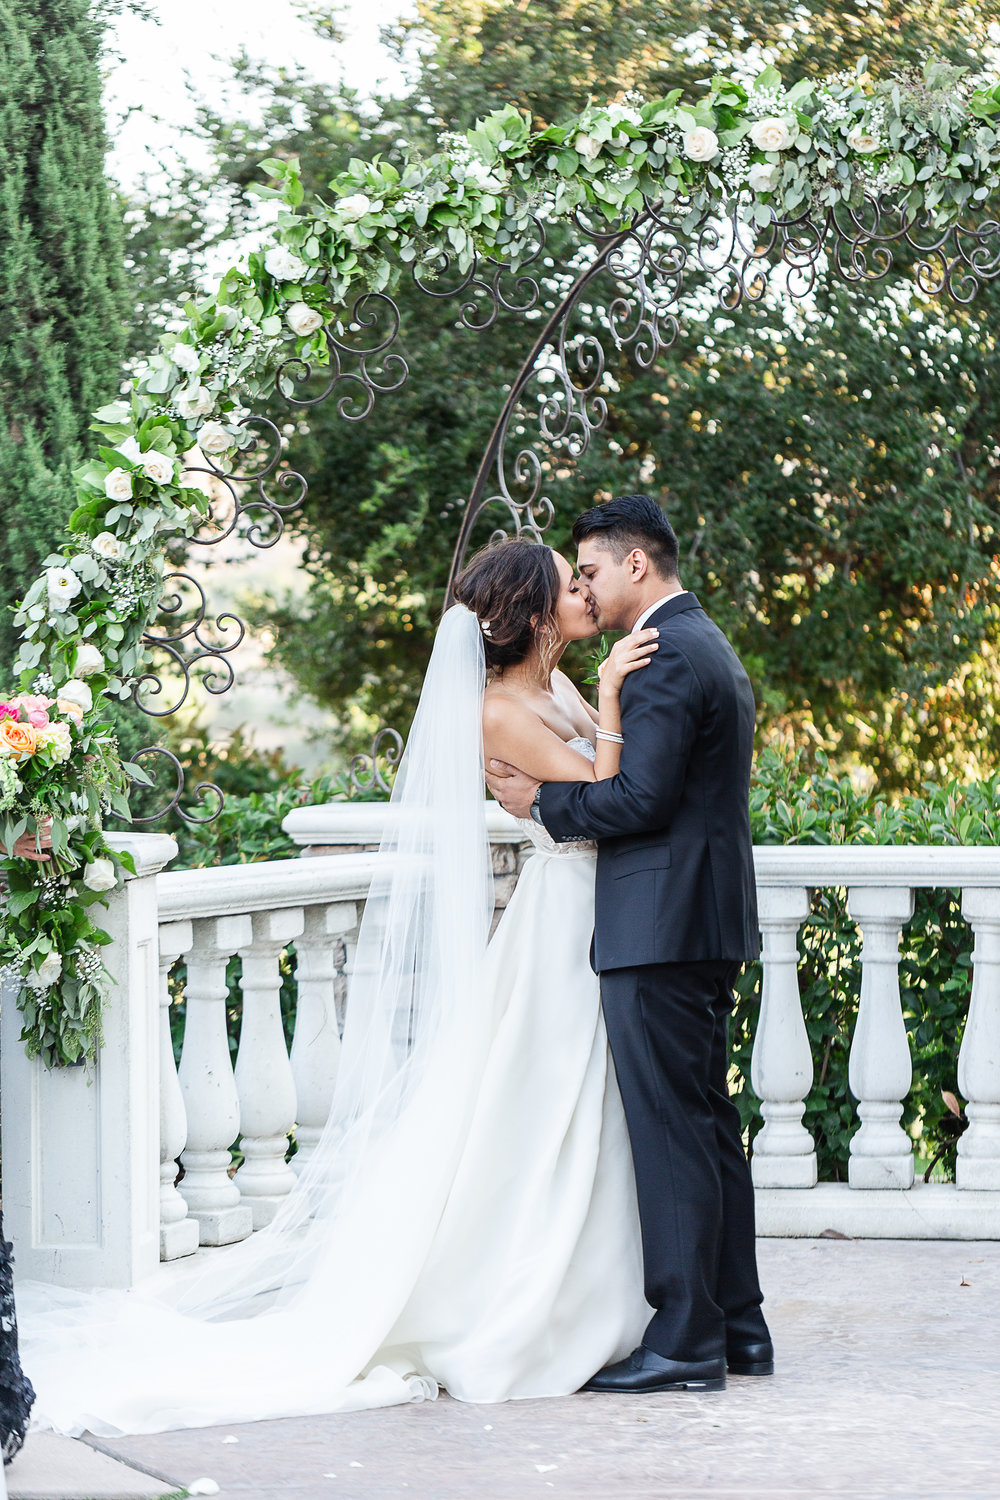 Medina and Arash's Vellano Country Club Wedding, Chino Hills-17.jpg